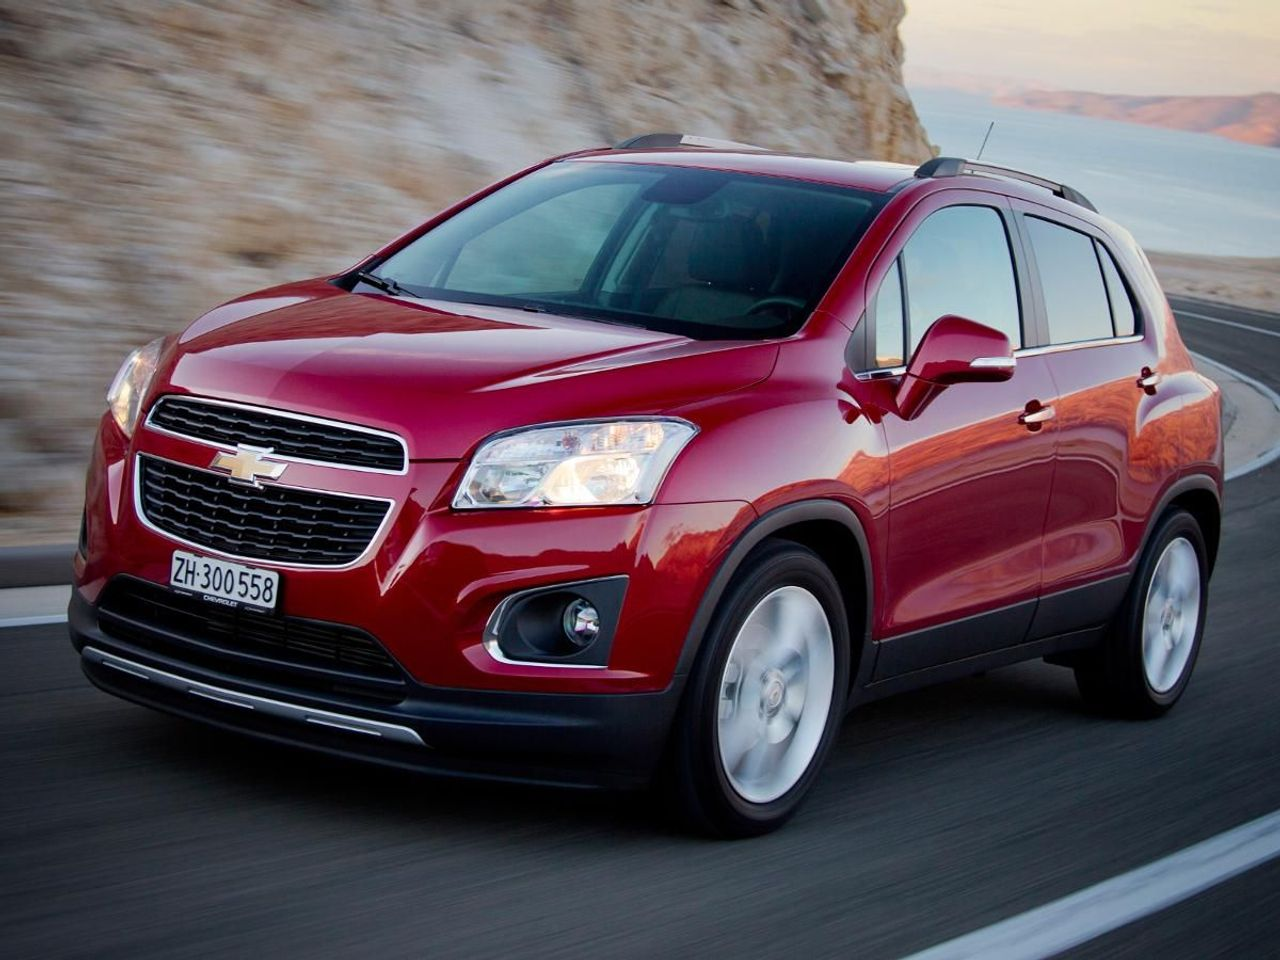 Chevrolet Trax Hatchback (2013 - 2015) review | Auto Trader UK